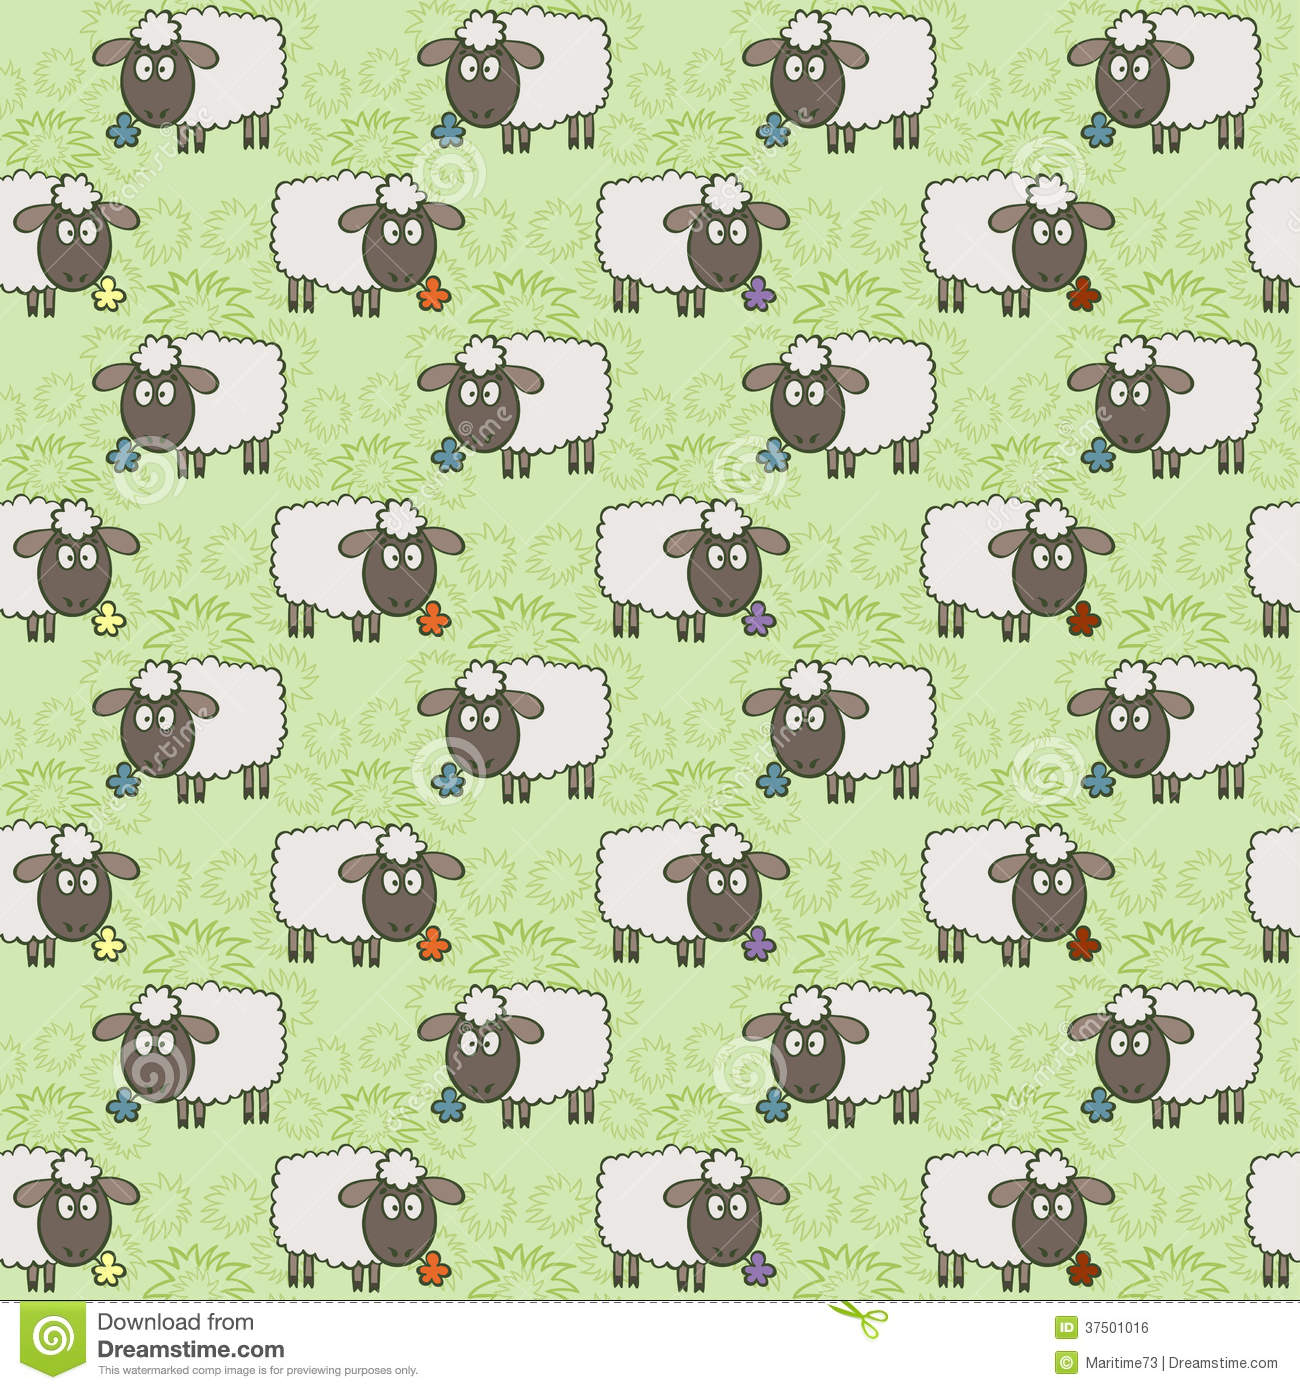 Seamless Pattern With Sheep Royalty Free Stock Image - Image: 37501016